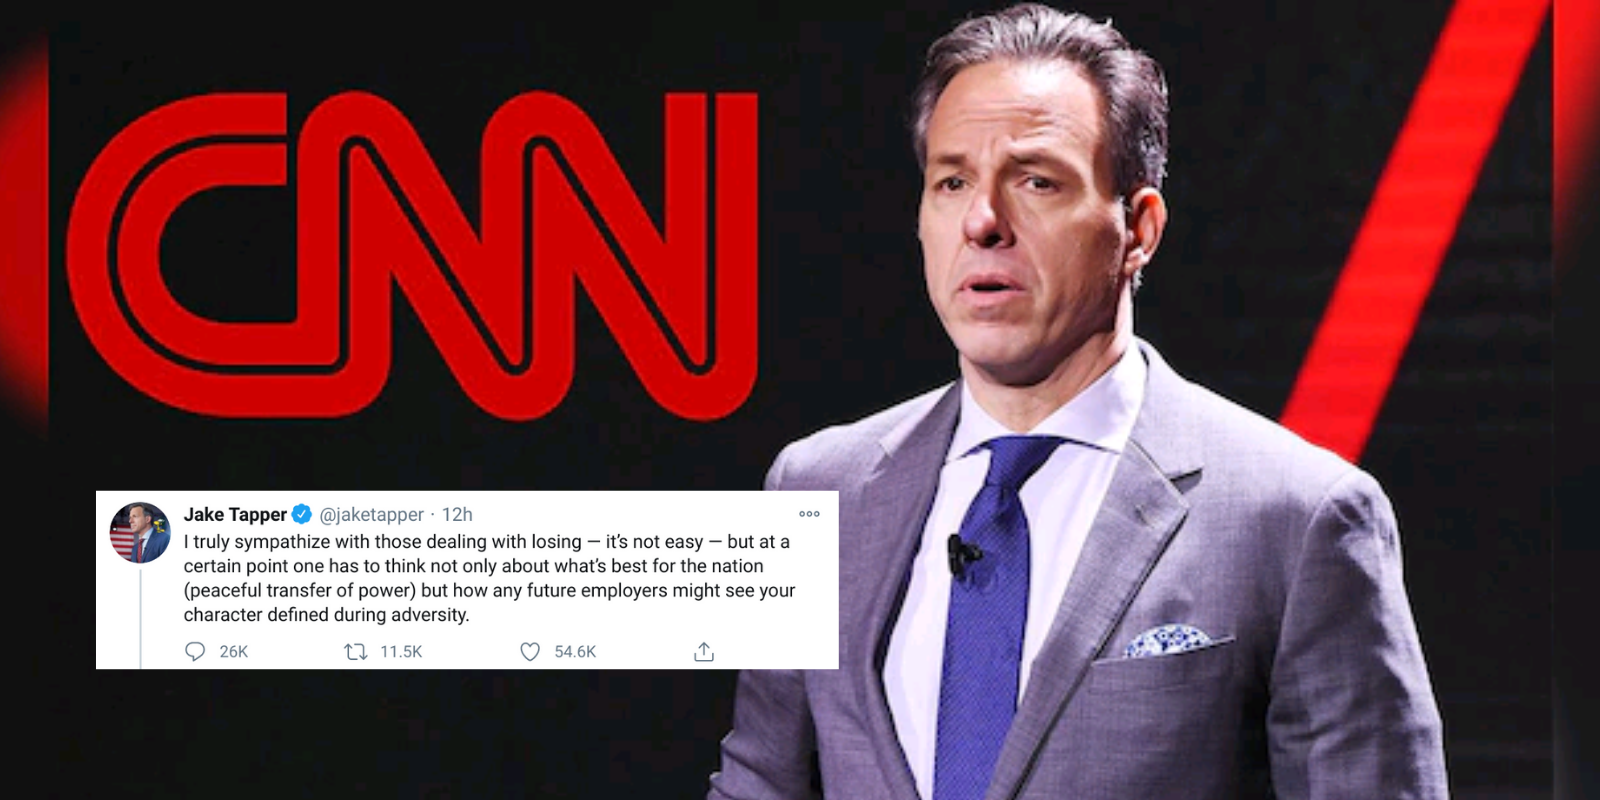 CNN's Jake Tapper warns of consequences for Trump supporters